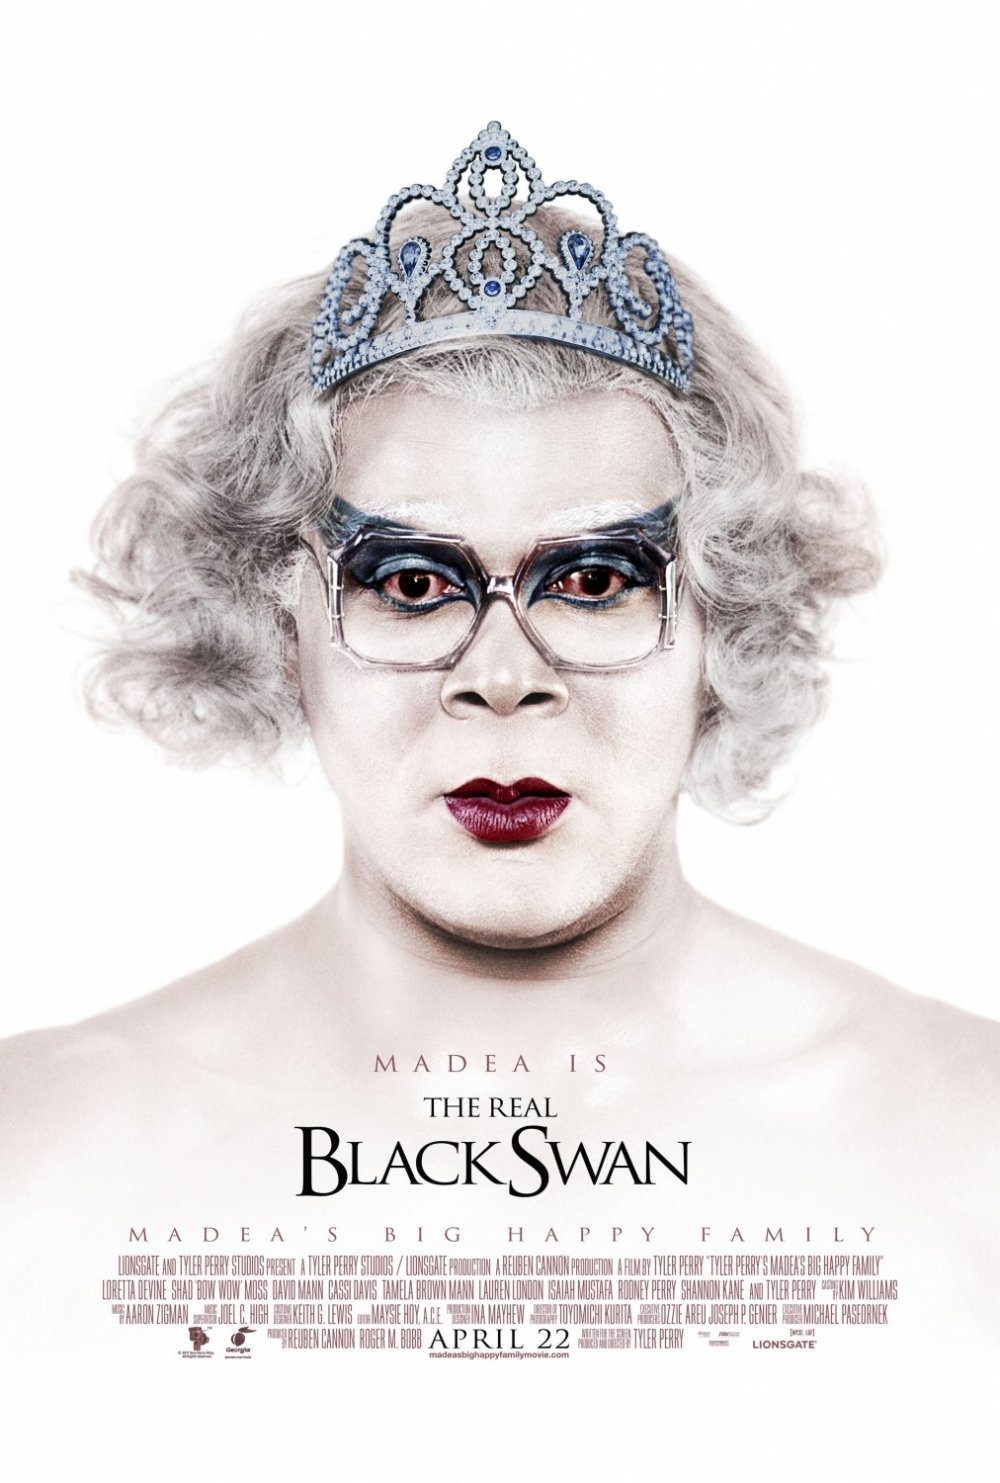 Madea is The Real Black Swan